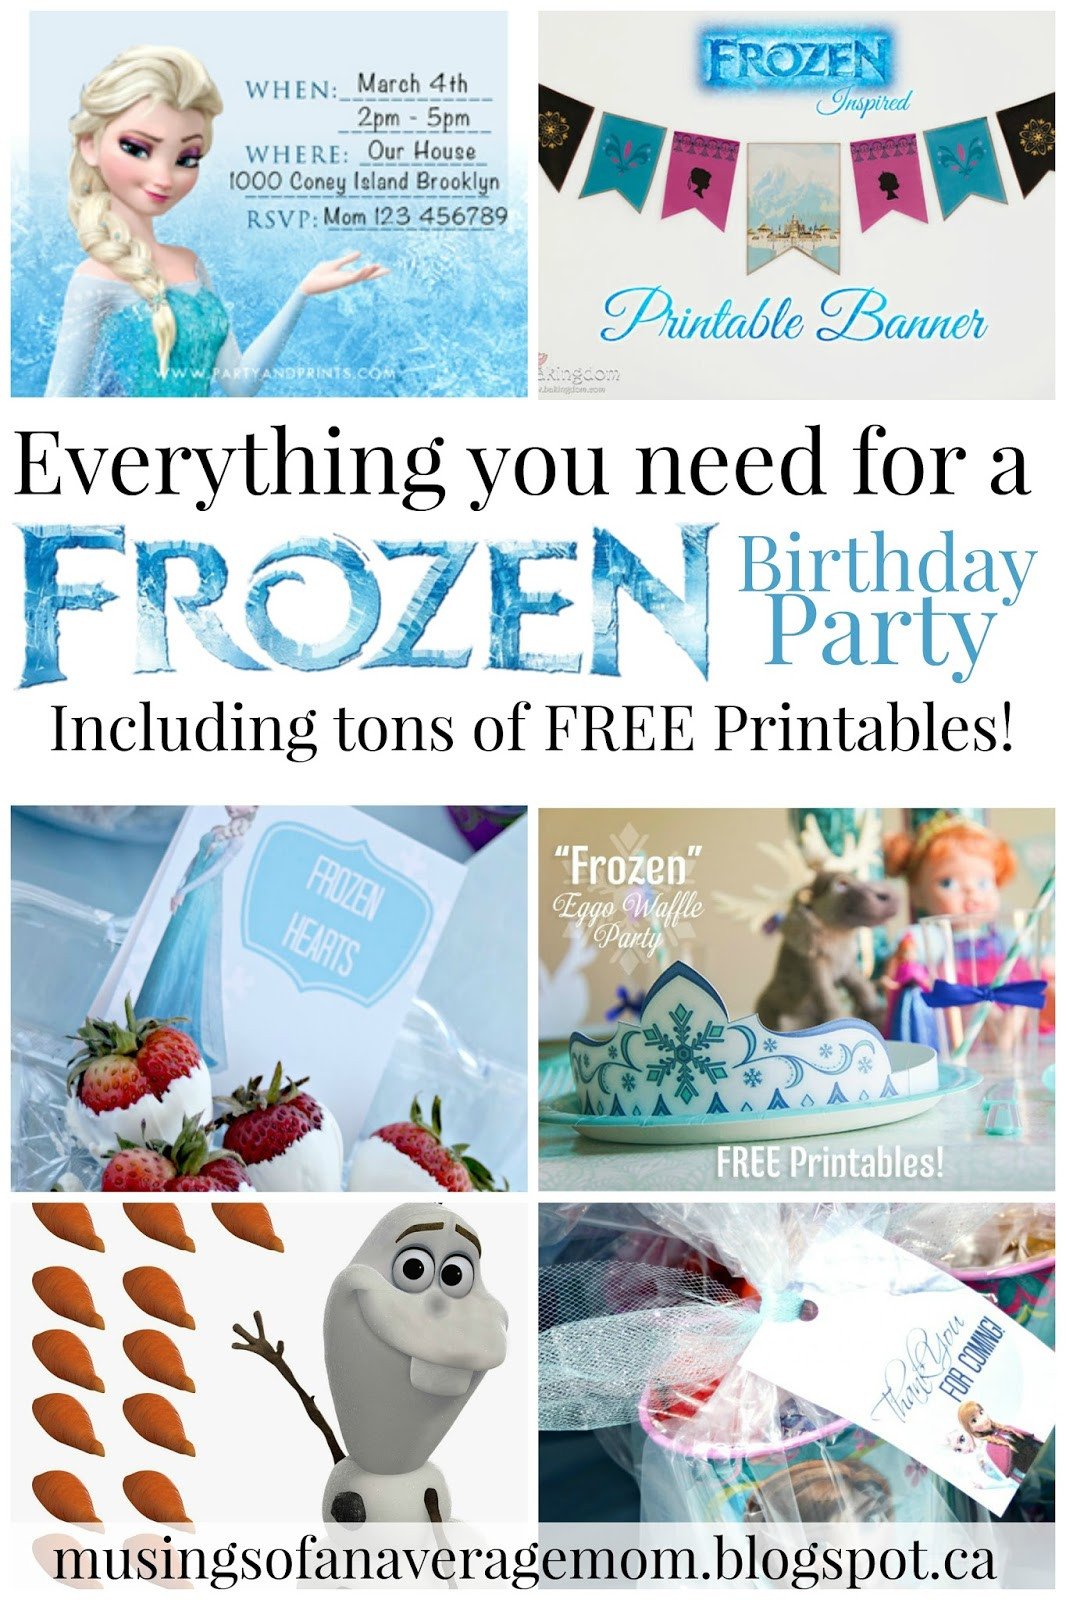 Frozen Printable Invitation Musings Of An Average Mom Free Frozen Party Printables